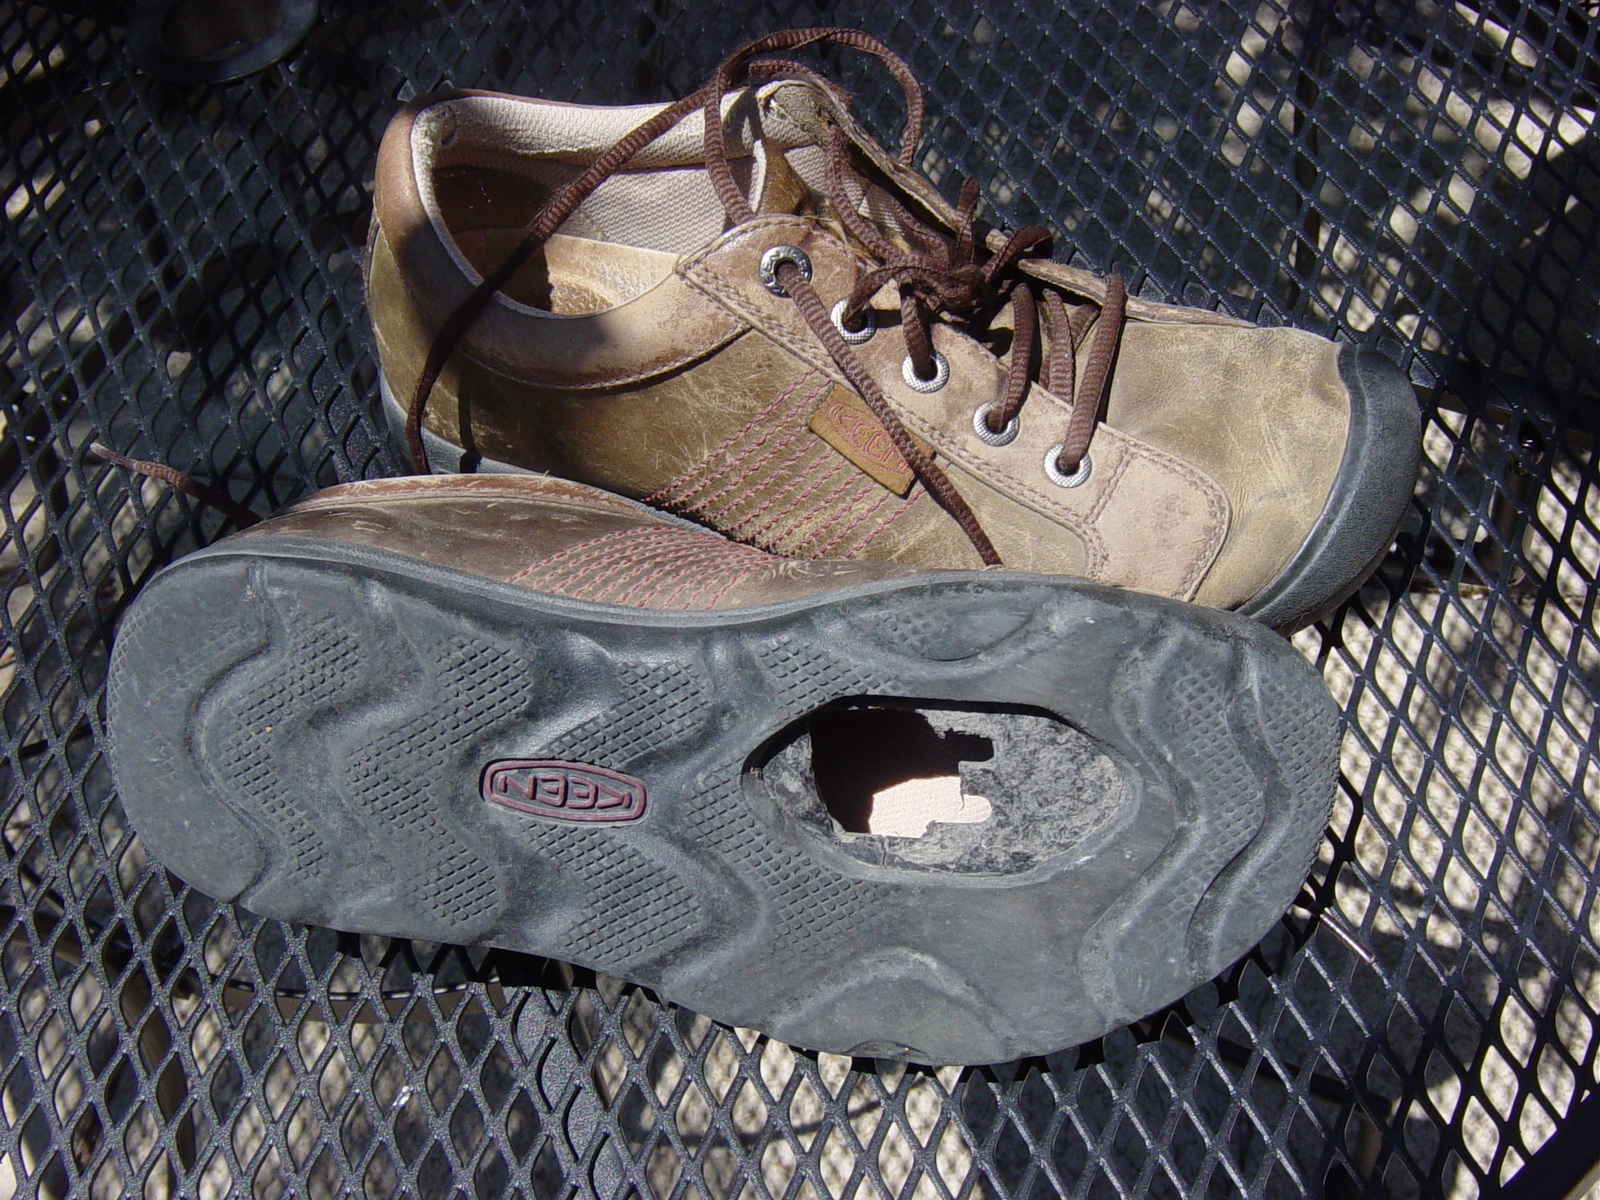 2164283c6b80 MY SIDE OF THE RIDE  KEEN AUSTIN PEDAL CYCLING SHOES UPDATE